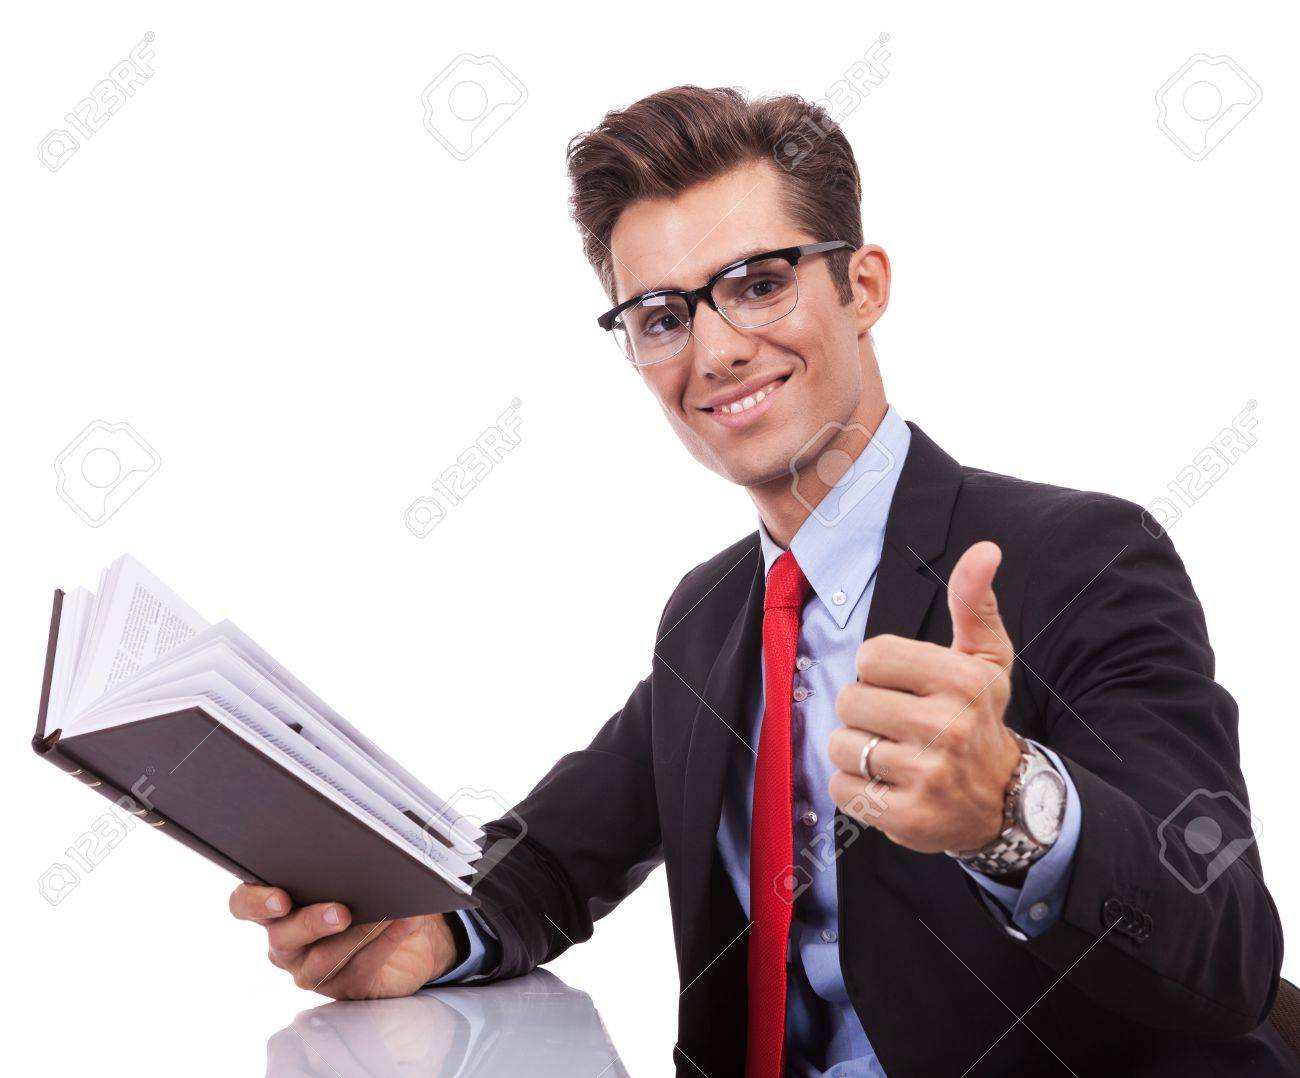 Business Man Reading A Book And Giving The Ok Thumbs Up Gesture Stock Photo Picture And Royalty Free Image Image 15738211 Free weekly top ten models don't miss out receive the weekly top 10 models directly to your inbox.you'll also get exclusive deals only available through our newsletters. business man reading a book and giving the ok thumbs up gesture